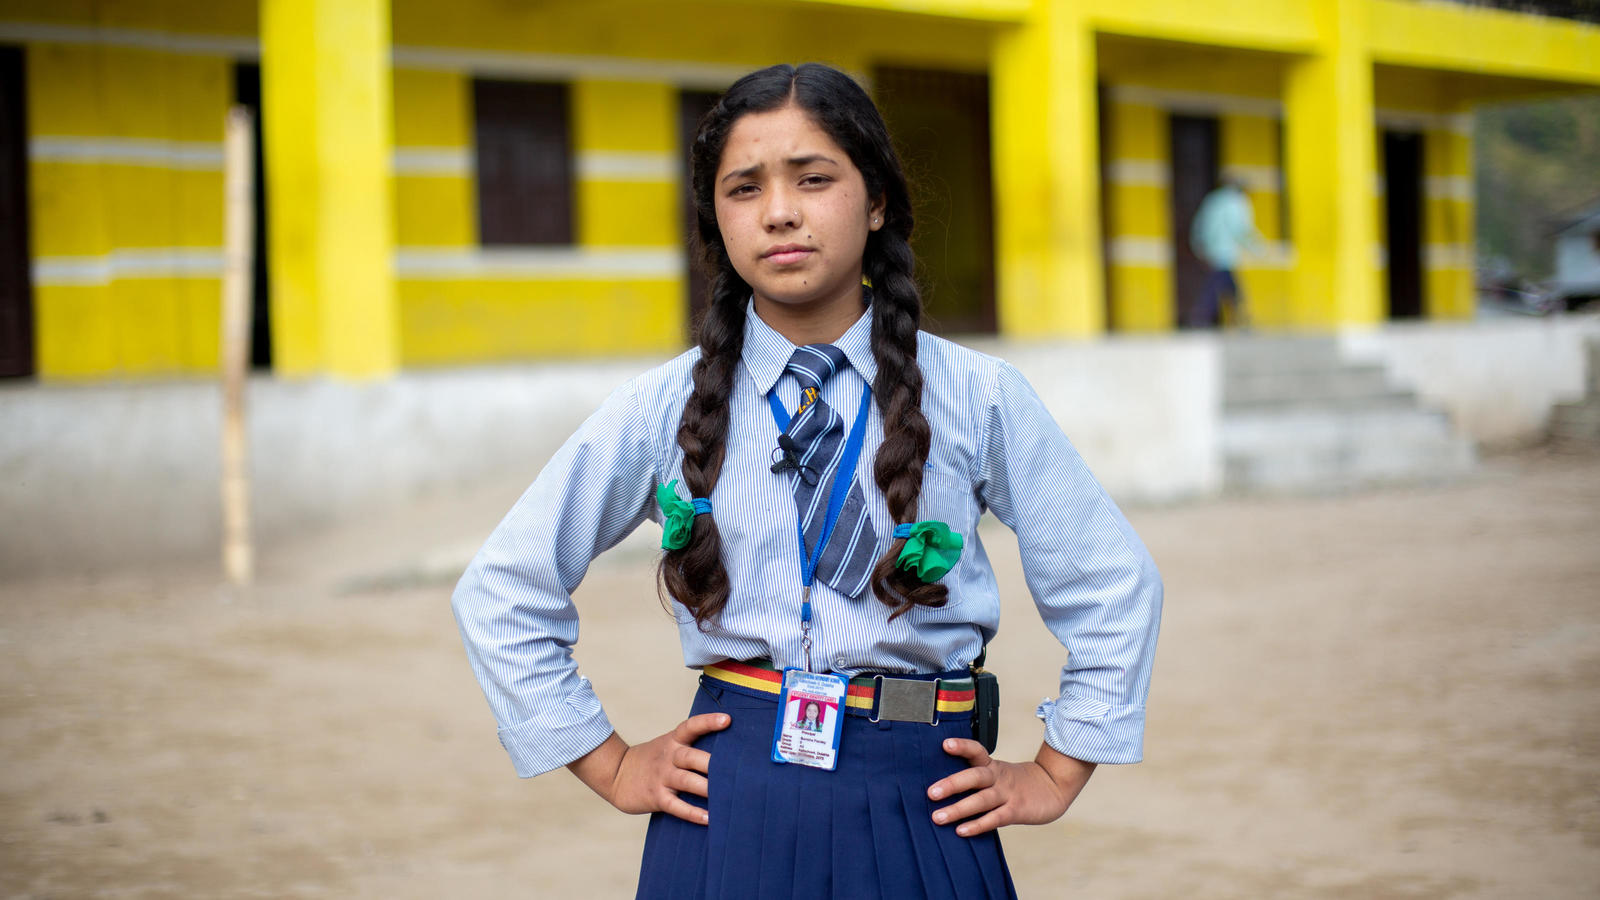 Anisha standing in front of her school in her uniform in Dolakha, Nepal, April 2019.